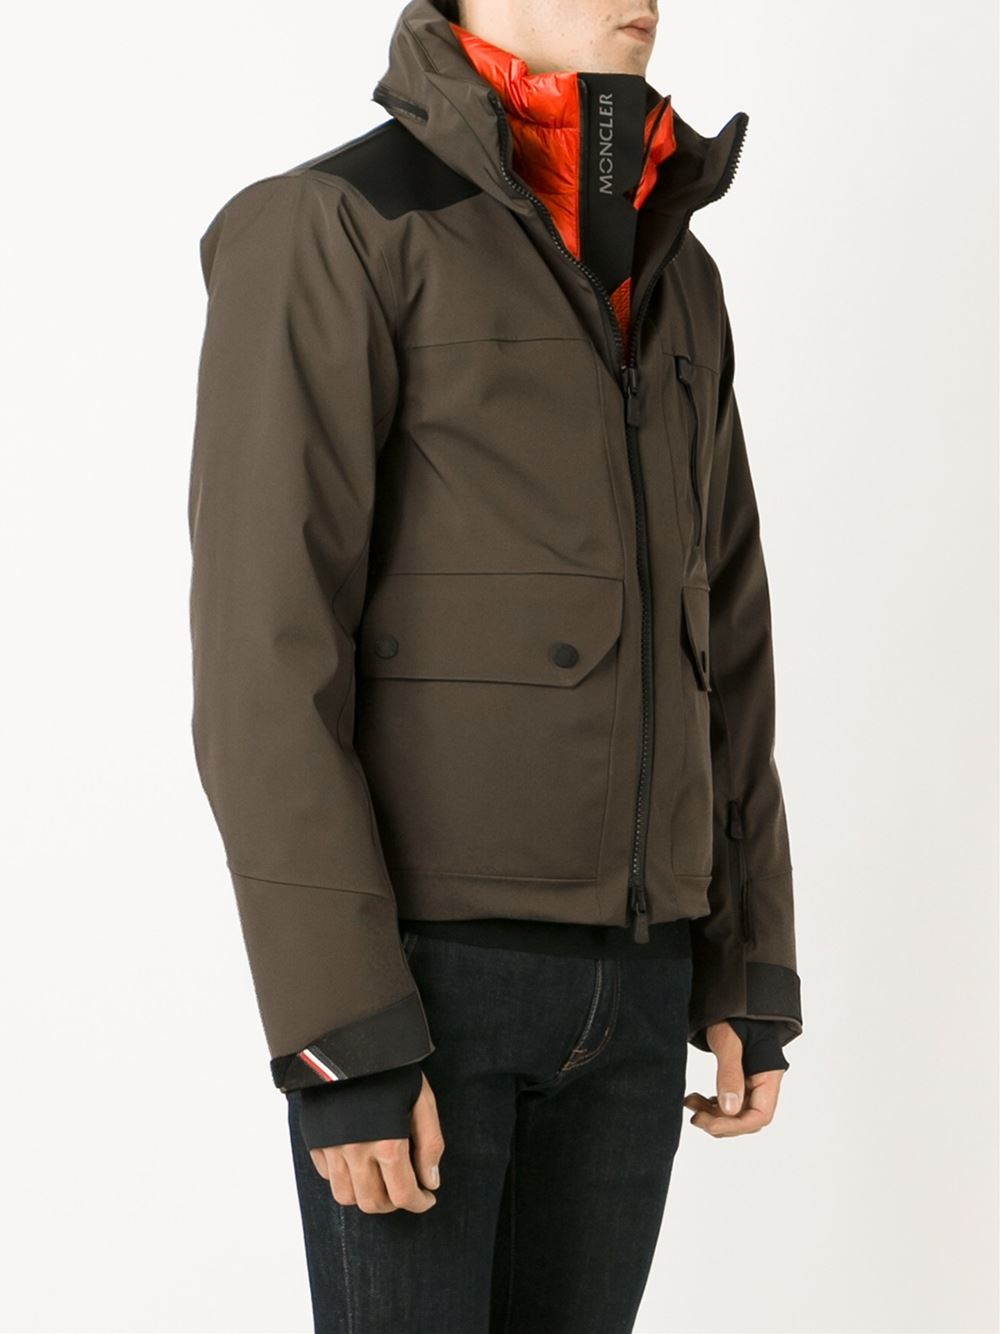 3 MONCLER GRENOBLE Insert Padded Jacket in Green (Brown) for Men